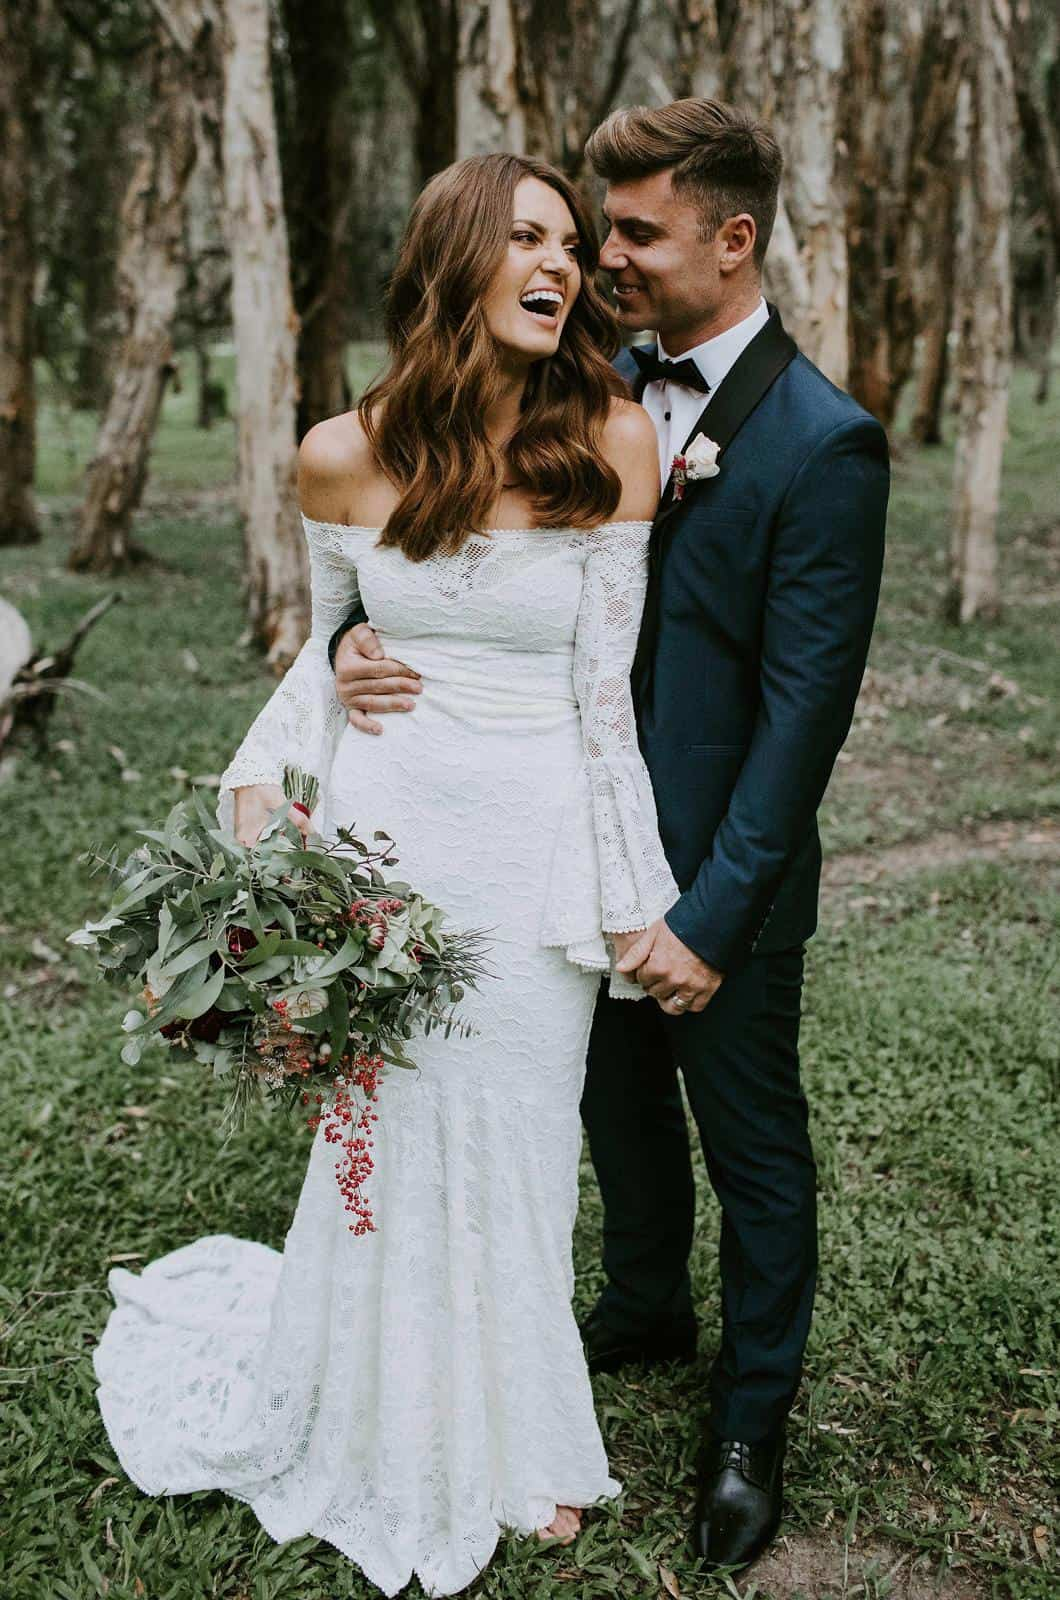 Boho Wedding Dress Inspiration French Lace Bridal Gowns Handmade by Grace Loves Lace Sloane